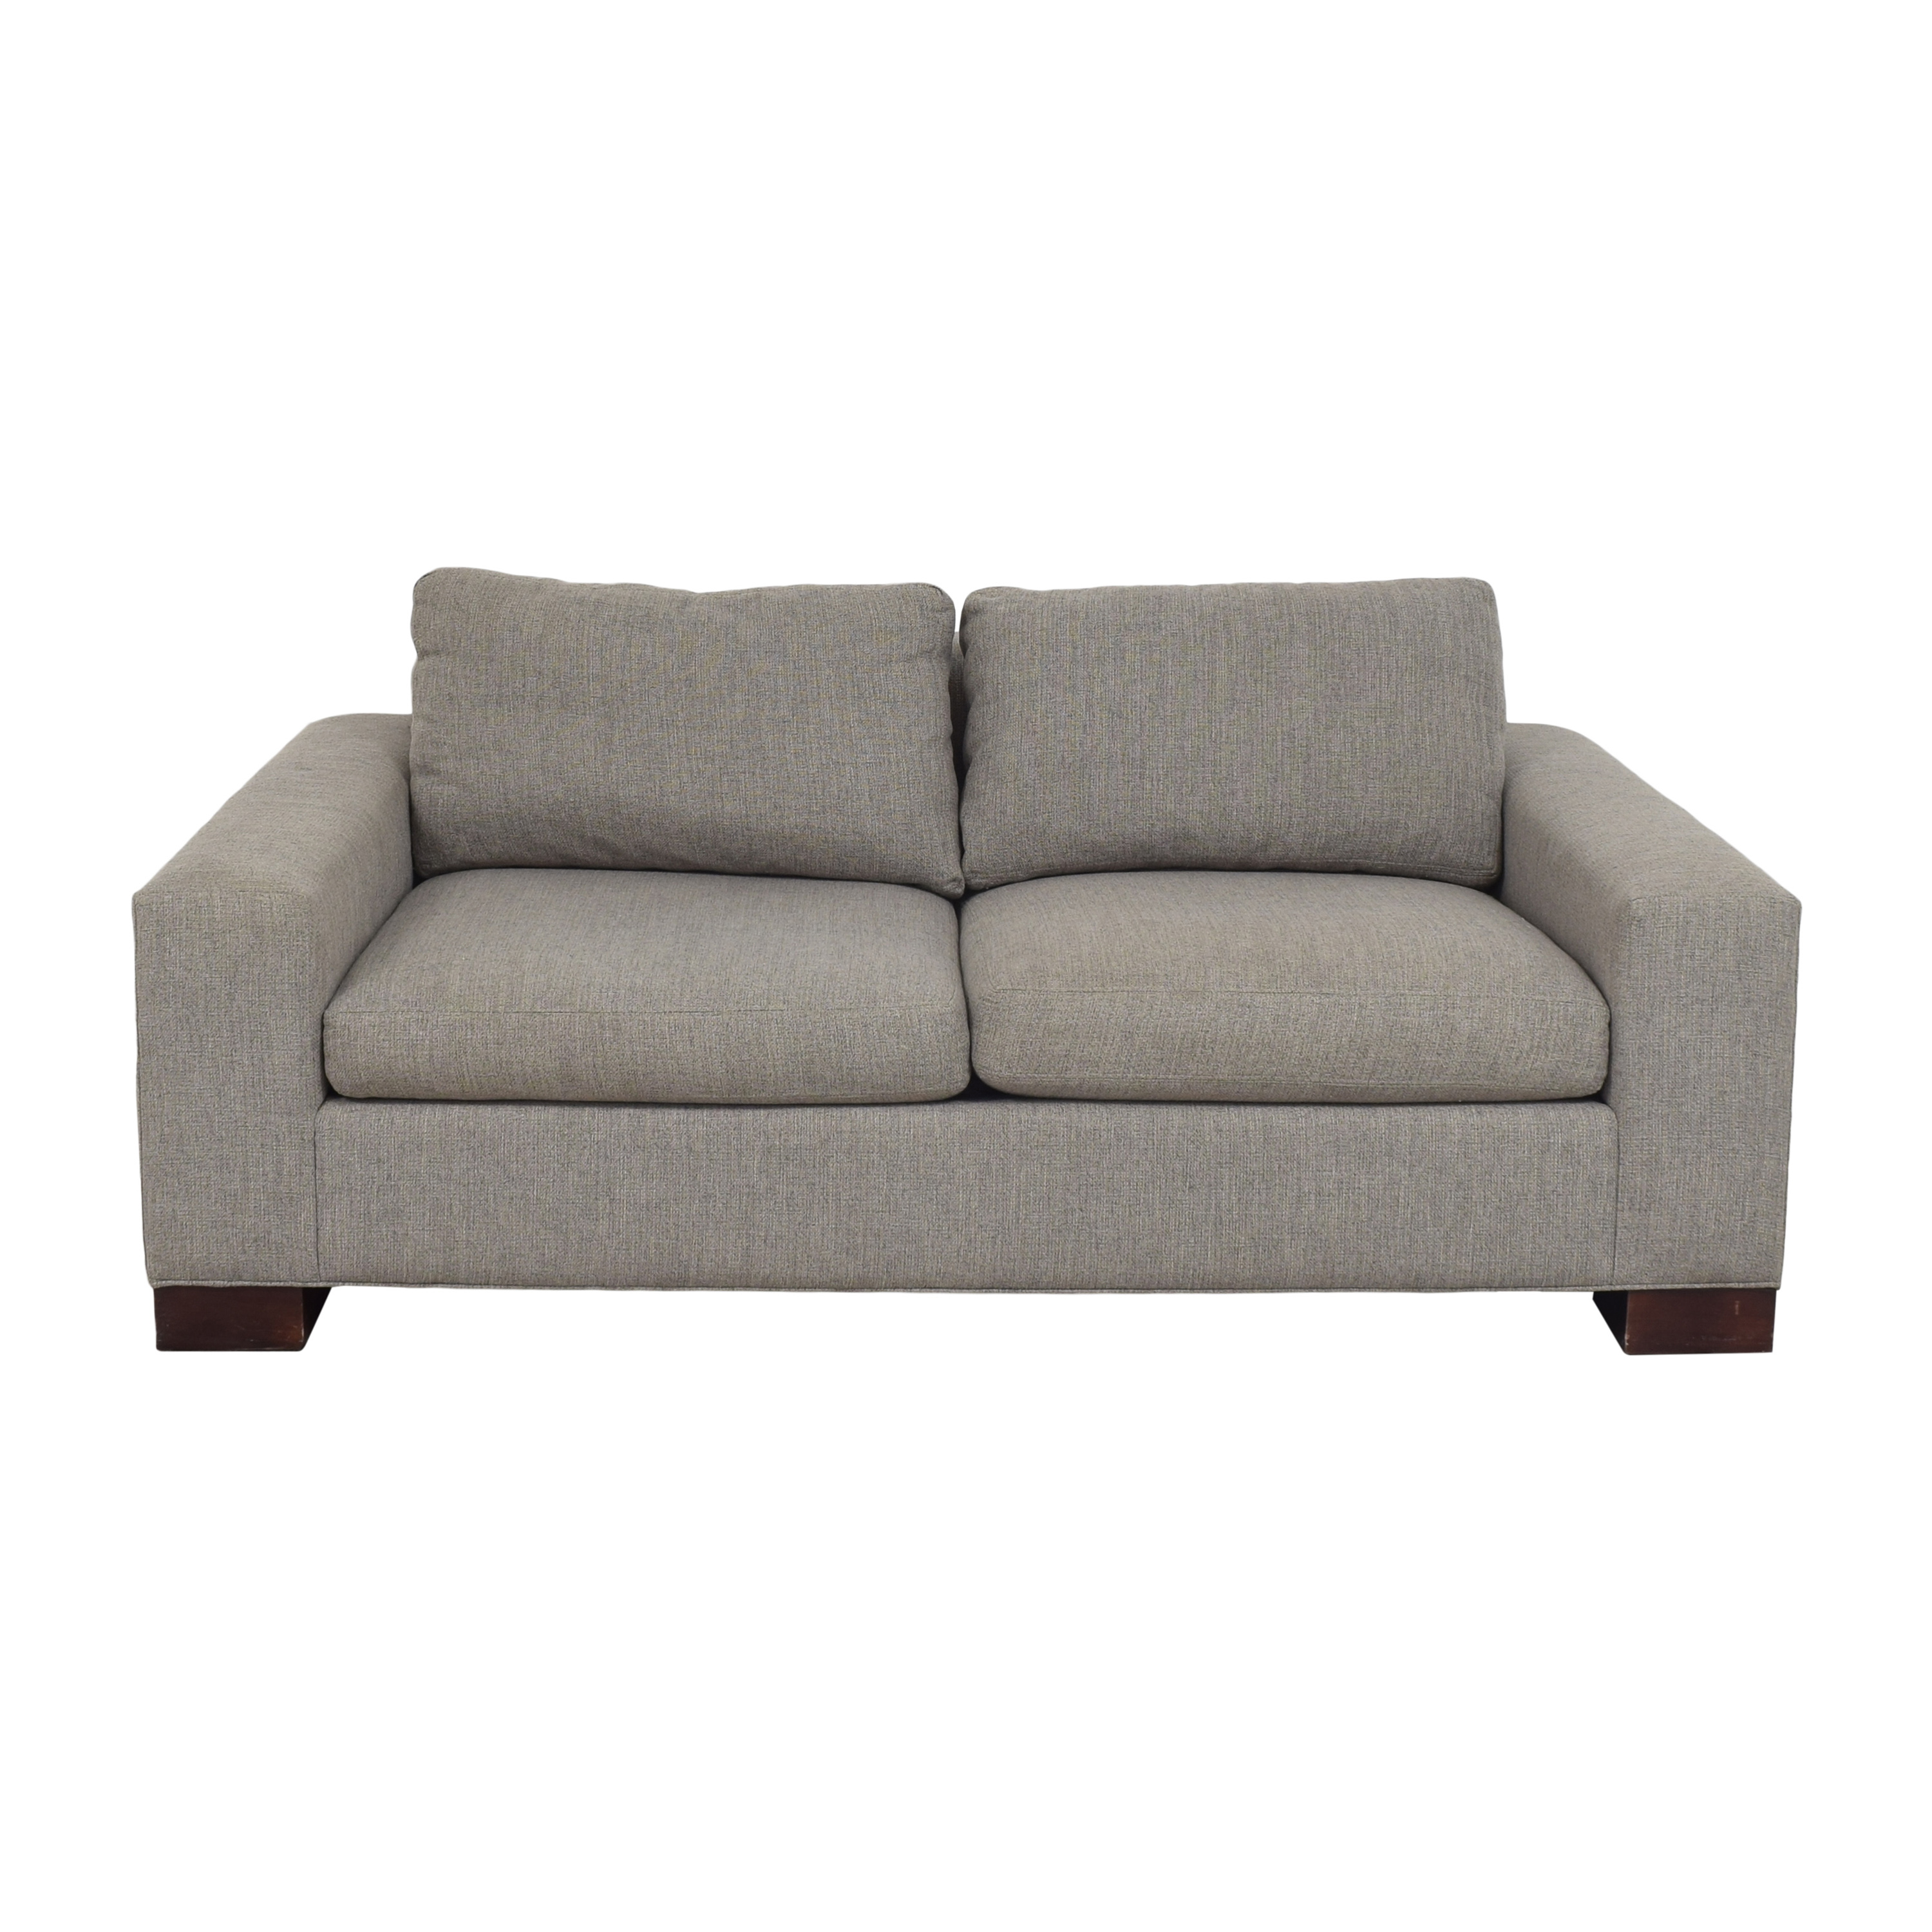 Crate & Barrel Crate & Barrel Two Cushion Sofa dimensions